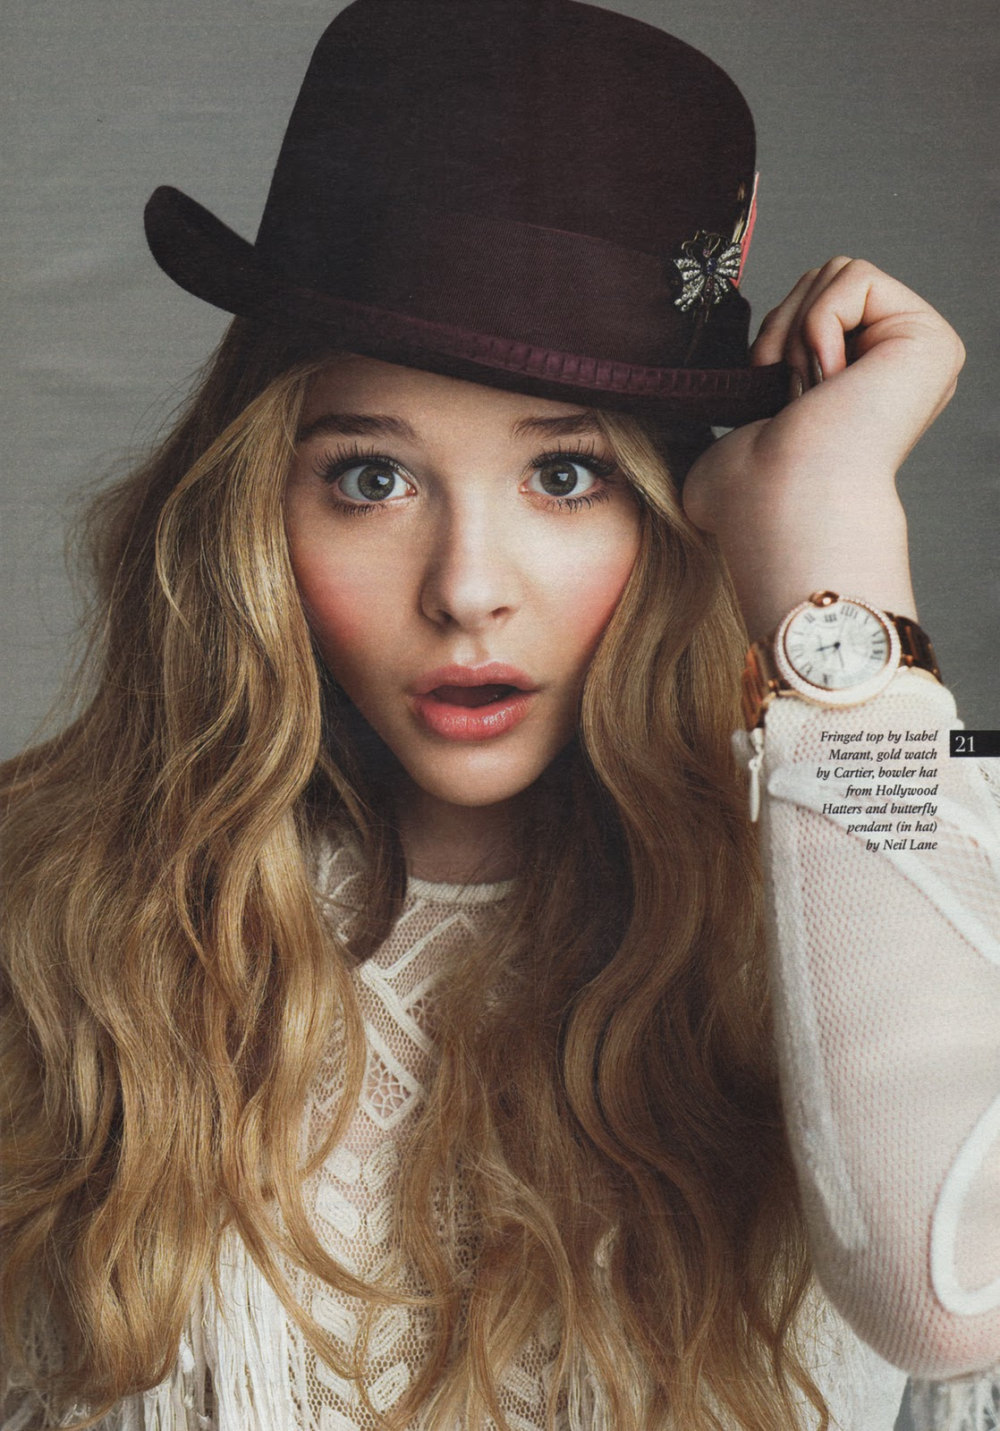 chloe grace moretz - the list of best movies